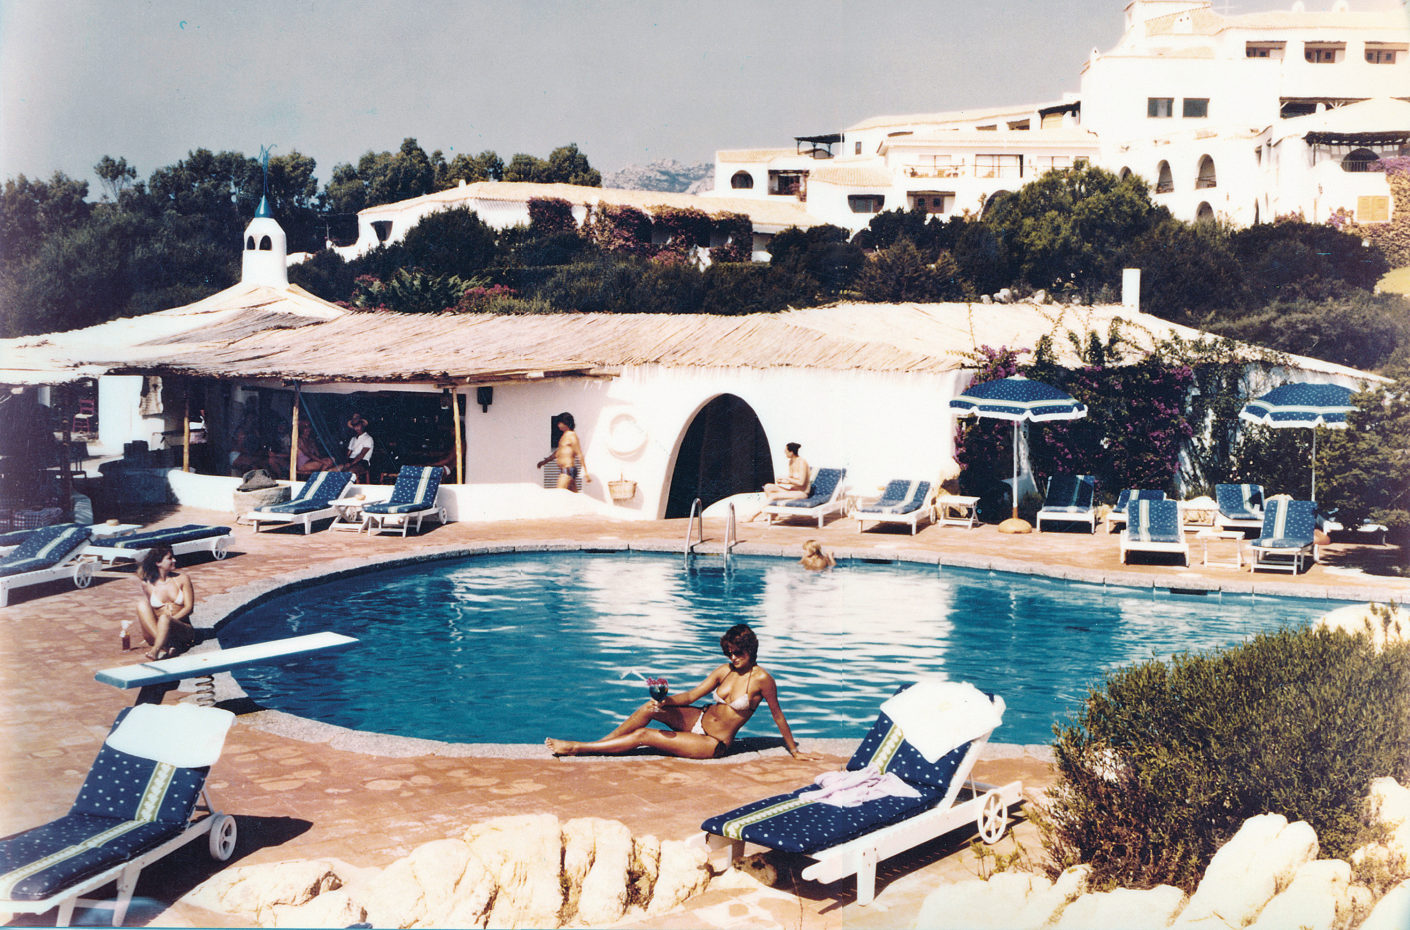 Pool of the Hotel Romazzino (photo from 1966)